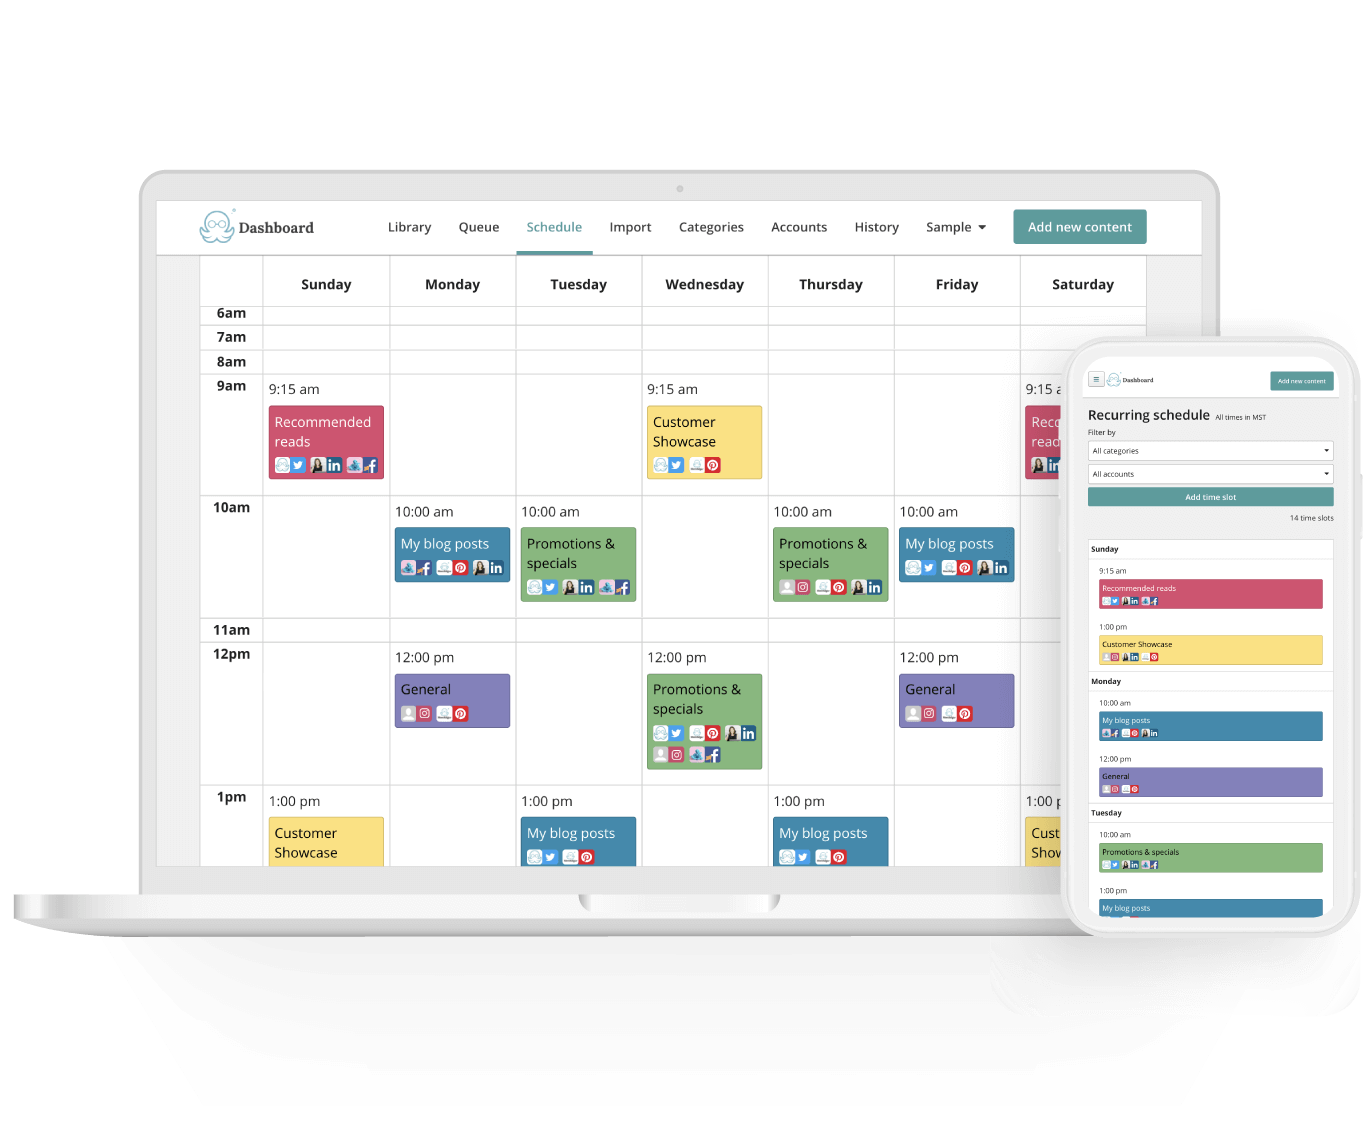 MeetEdgar - content calendar, multiple social media accounts, and ability to schedule posts